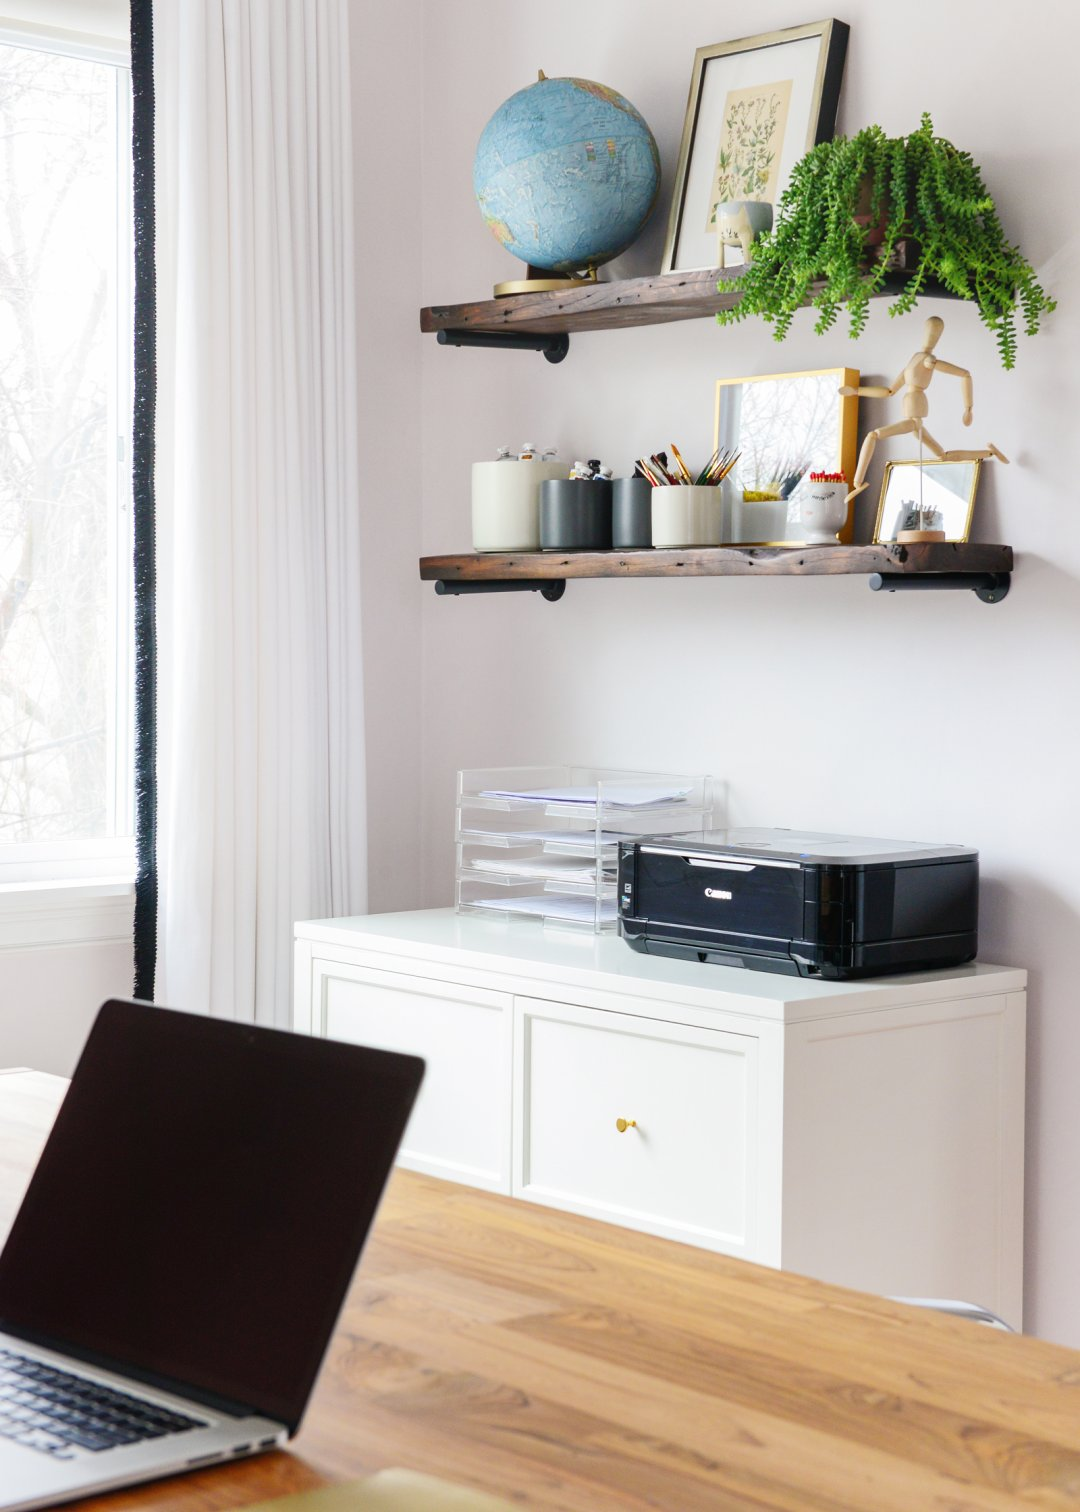 a printer and filing rack sits on a cabinet below two shelves displaying painting supplies, photos, a plant and a globe